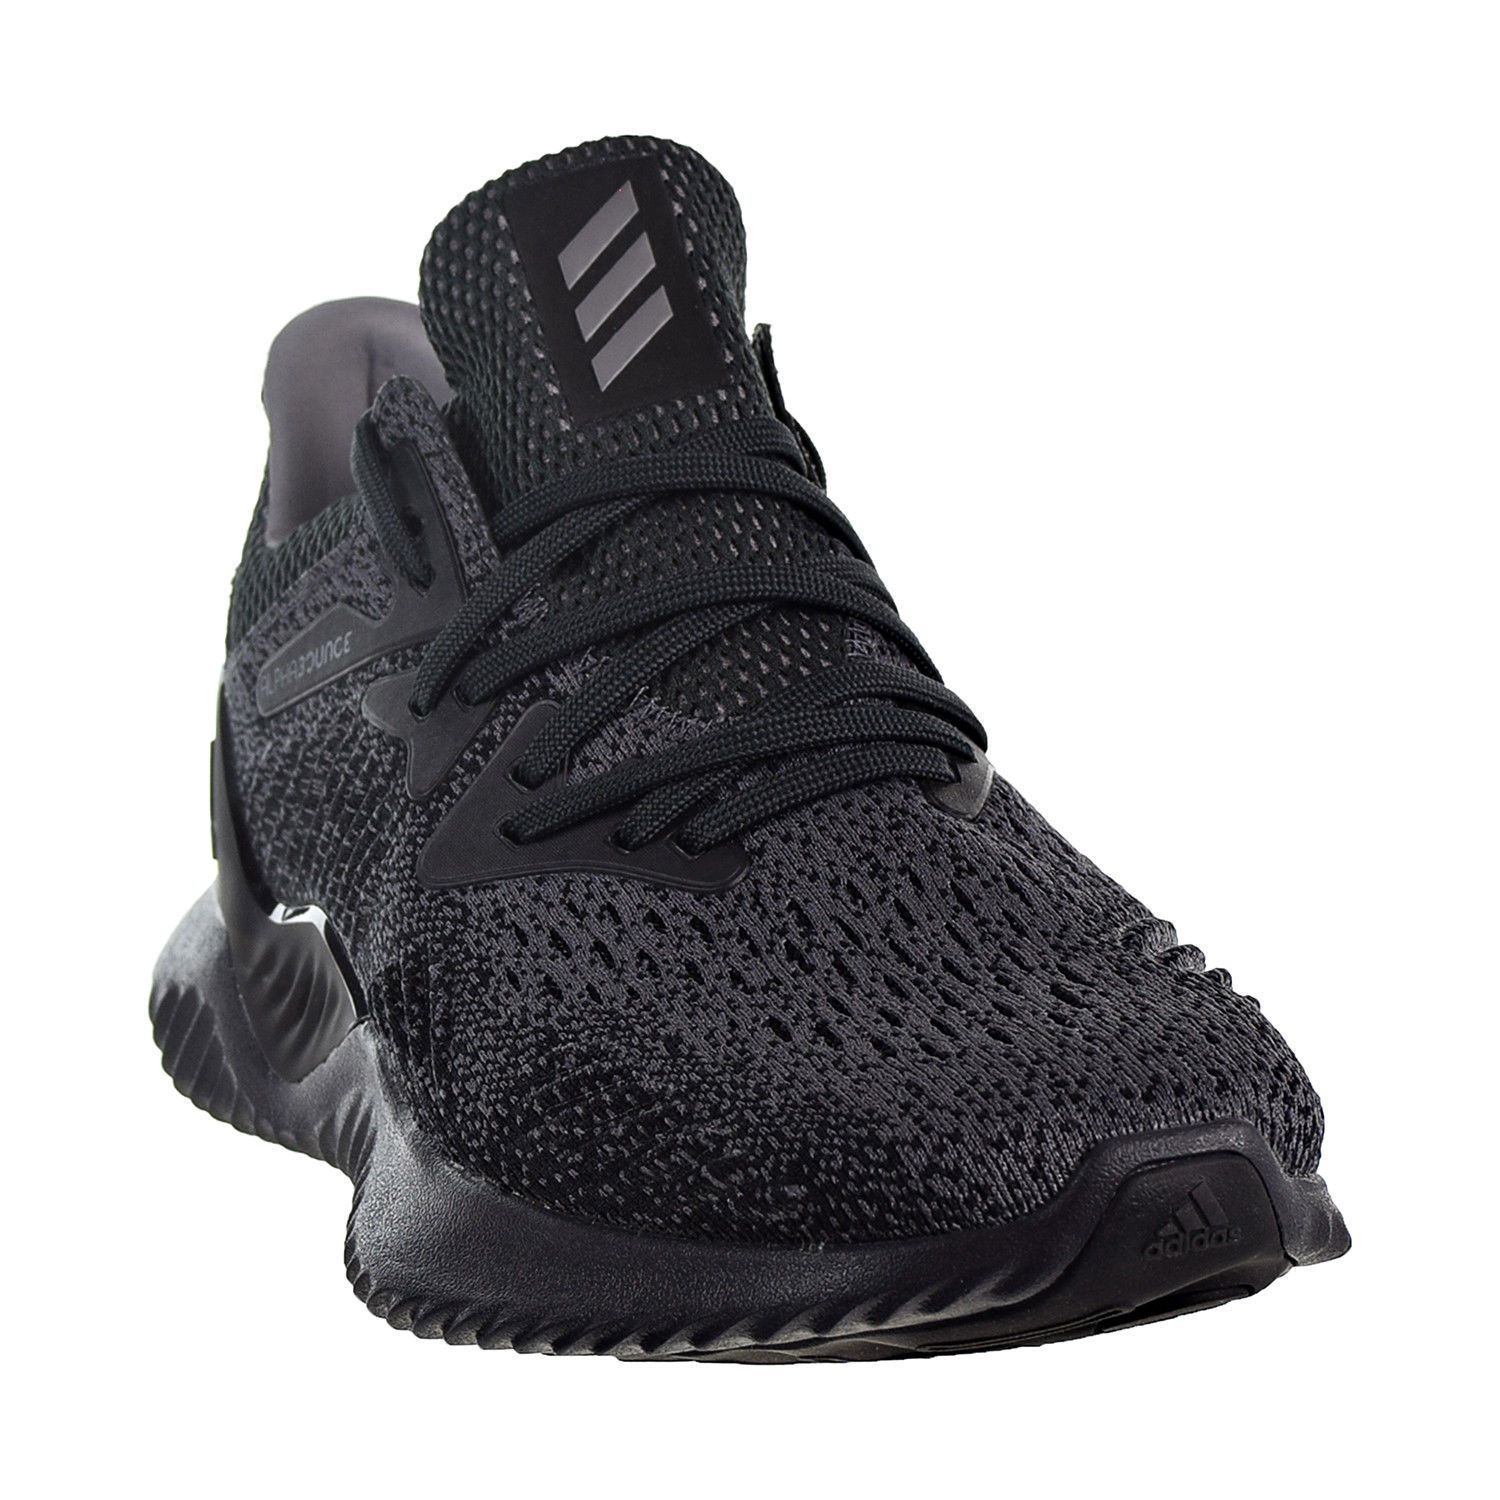 84e5cedc66719 Adidas Alphabounce Beyond Men s Shoes Carbon Grey Core Black AQ0573  74.95  End Date